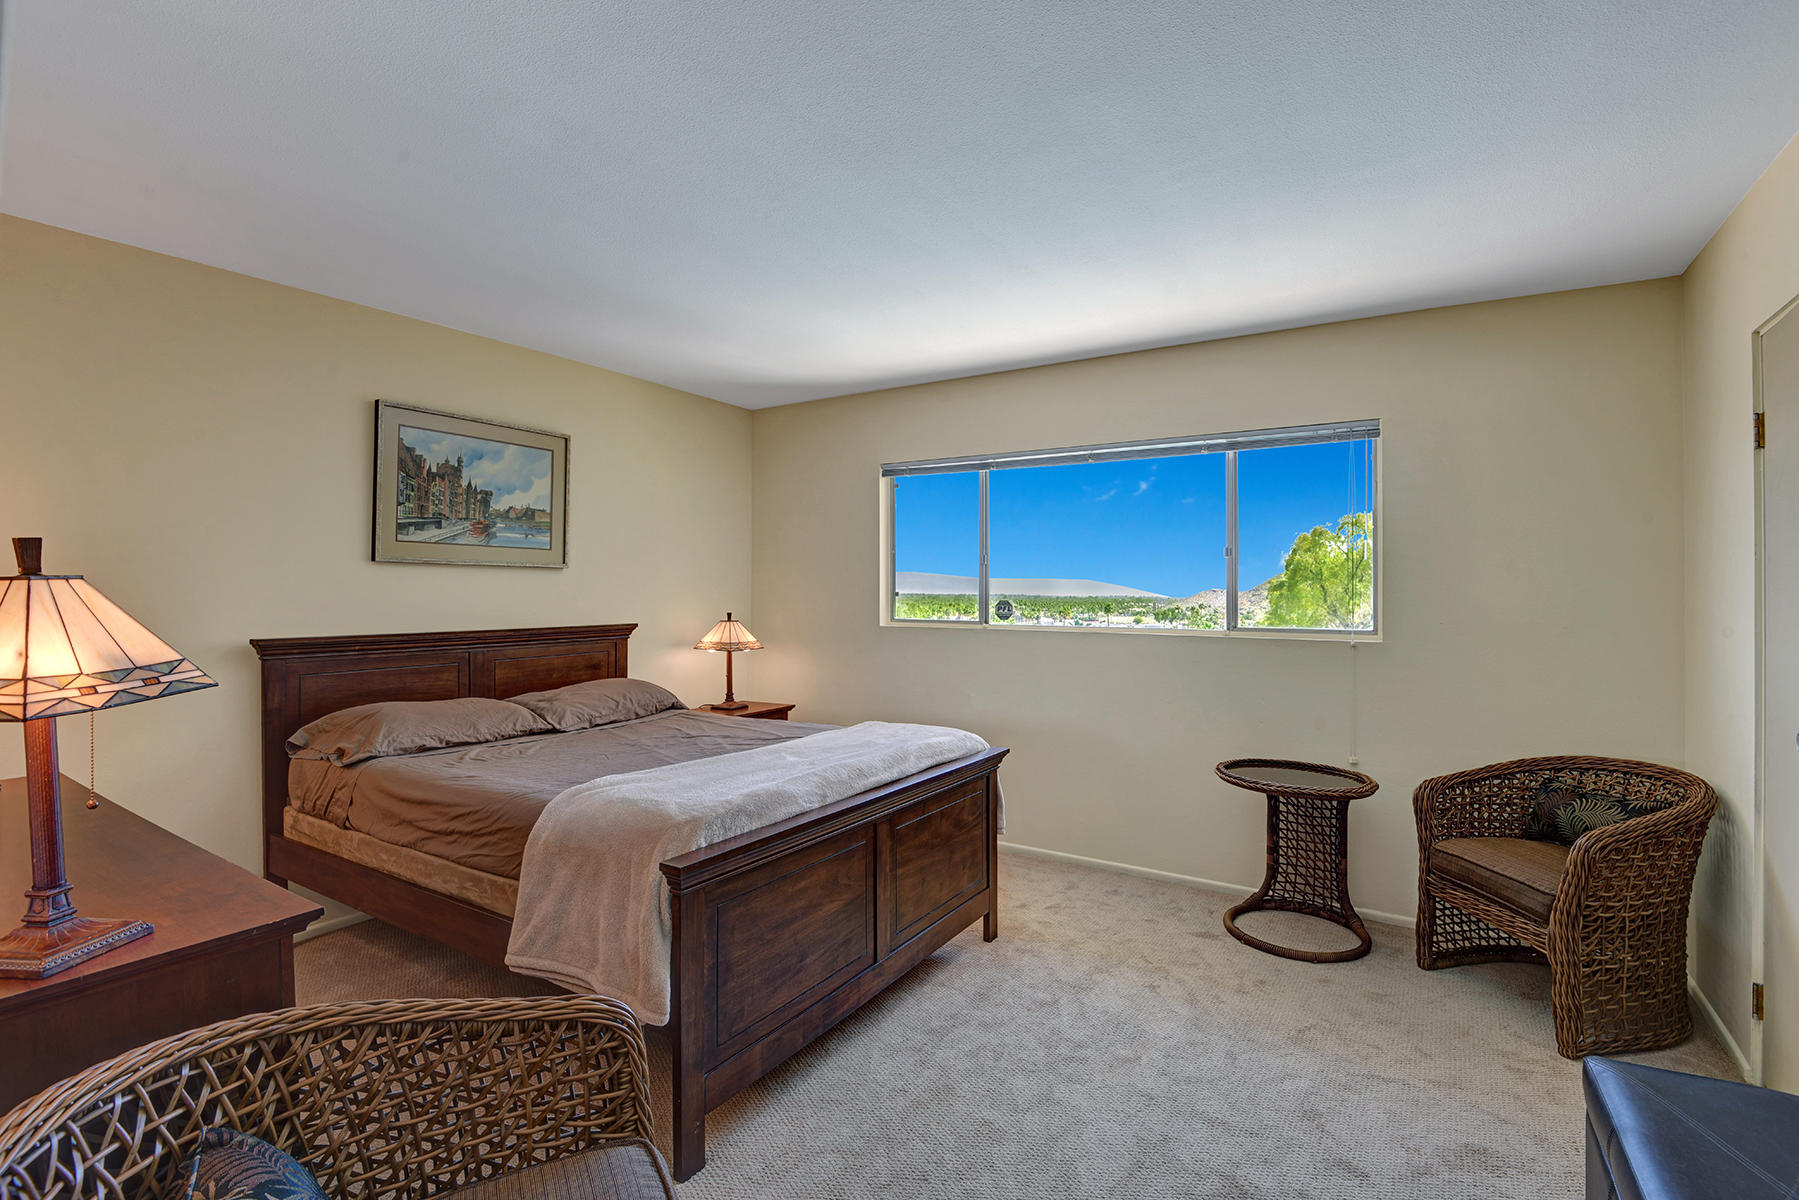 2149 Southridge Drive, Palm Springs, California 92264, 2 Bedrooms Bedrooms, ,2 BathroomsBathrooms,Residential,For Sale,2149 Southridge Drive,219041605